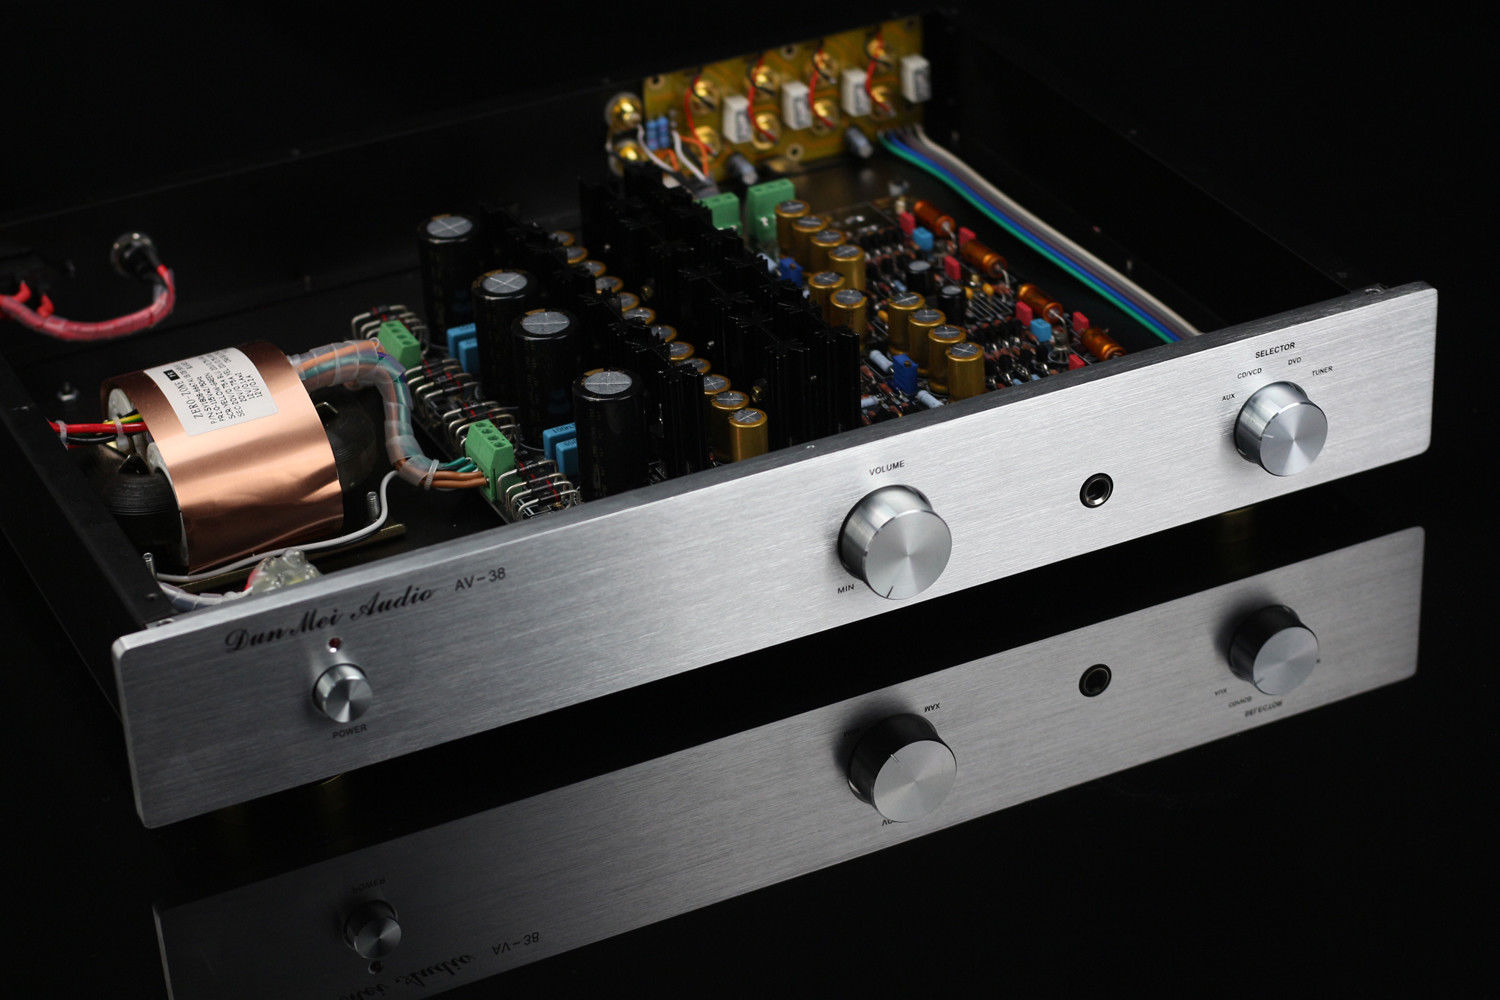 ZEROZONE Finished Hi end Class A Headphone amplifier preamp base on Krell KSA-5 L8-21